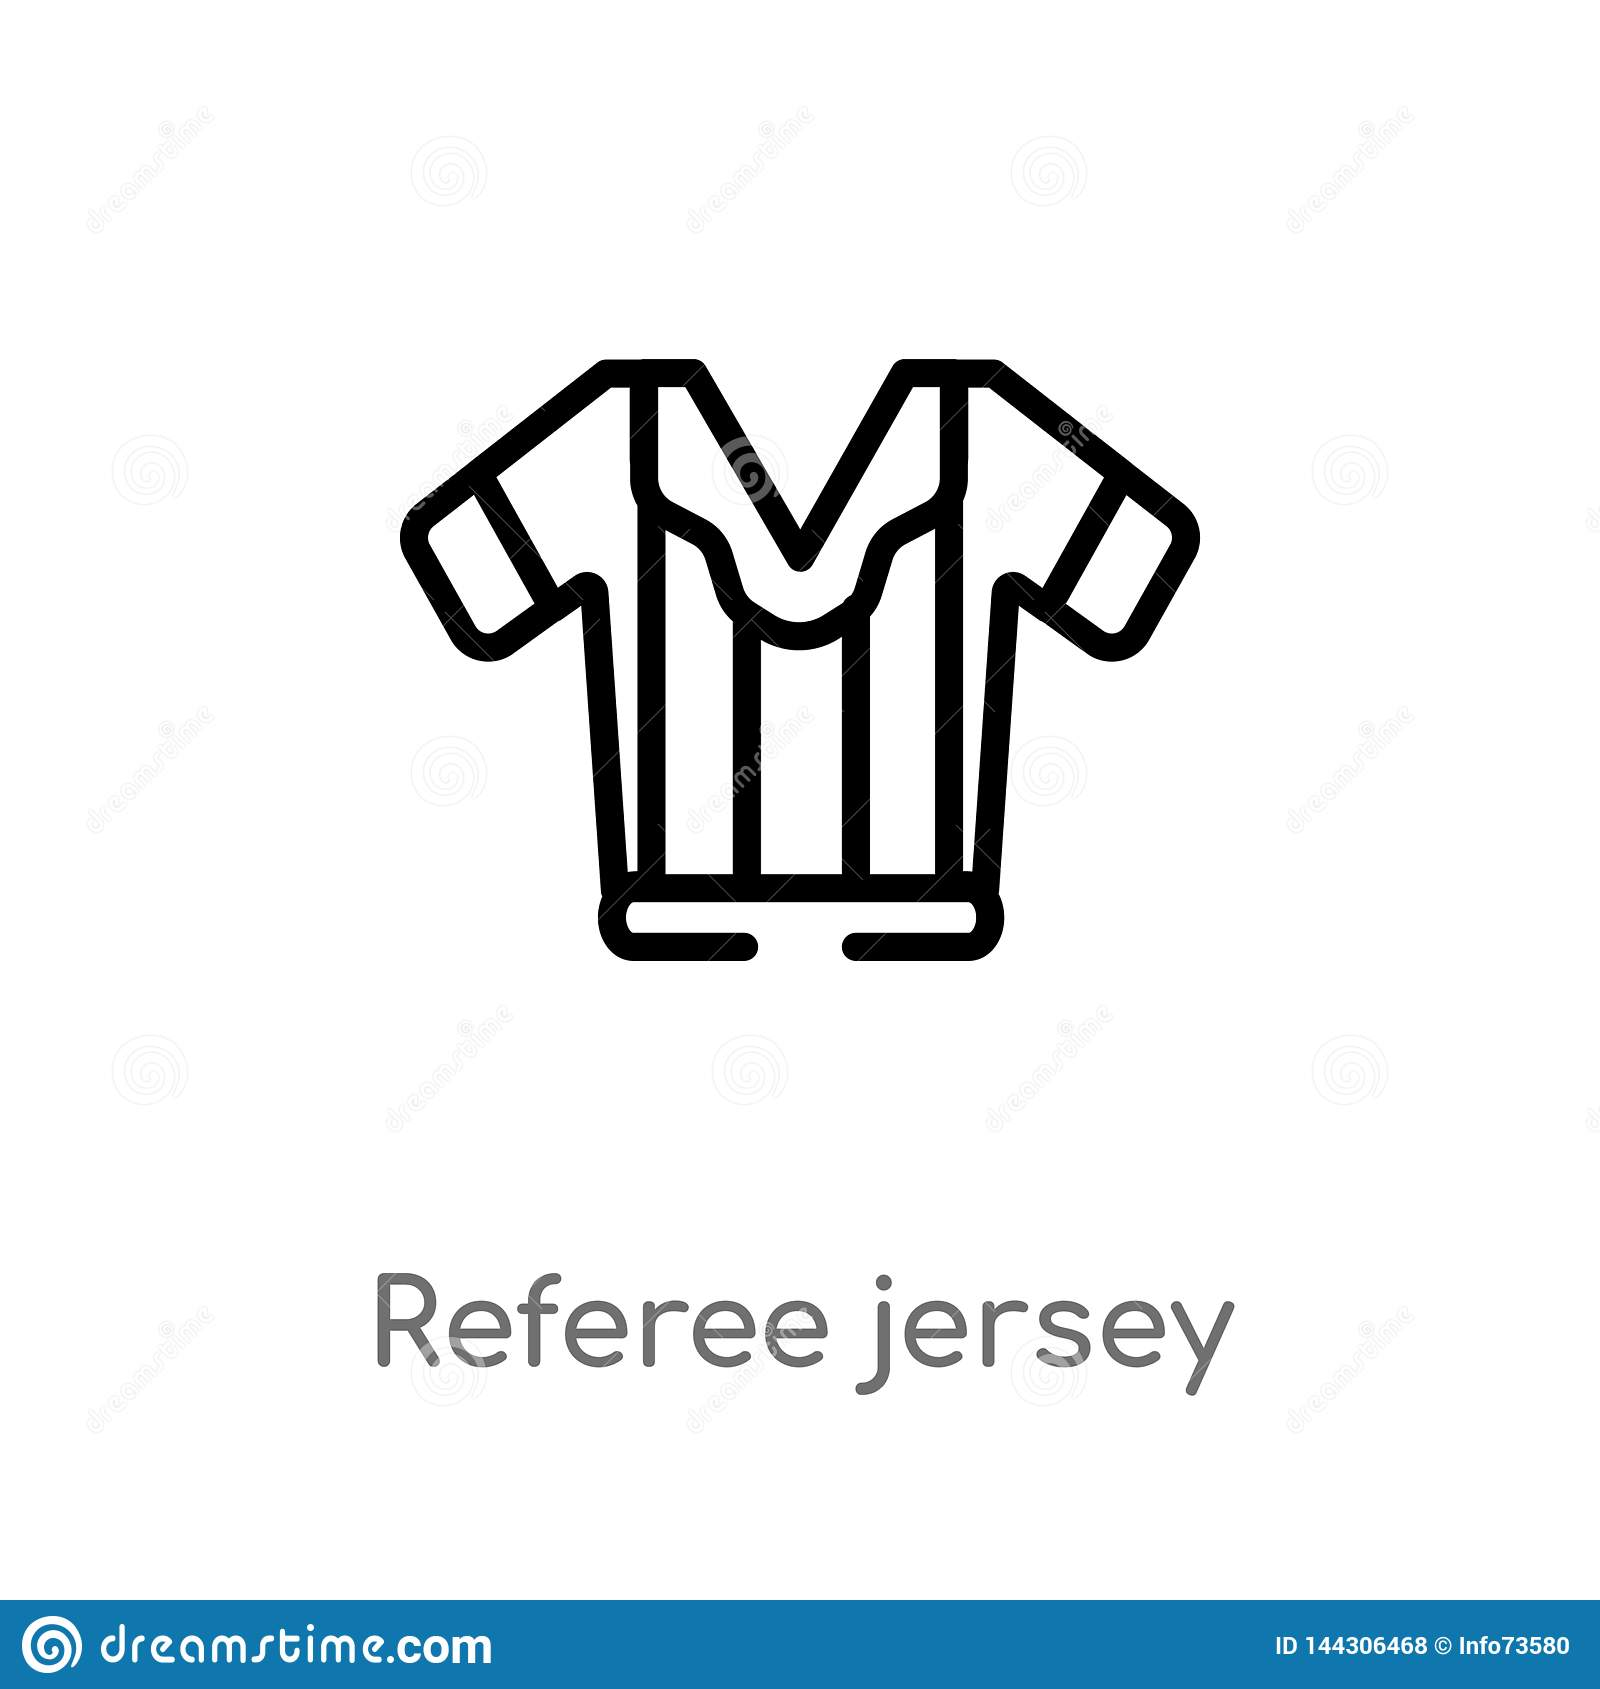 Outline Referee Jersey Vector Icon  Isolated Black Simple